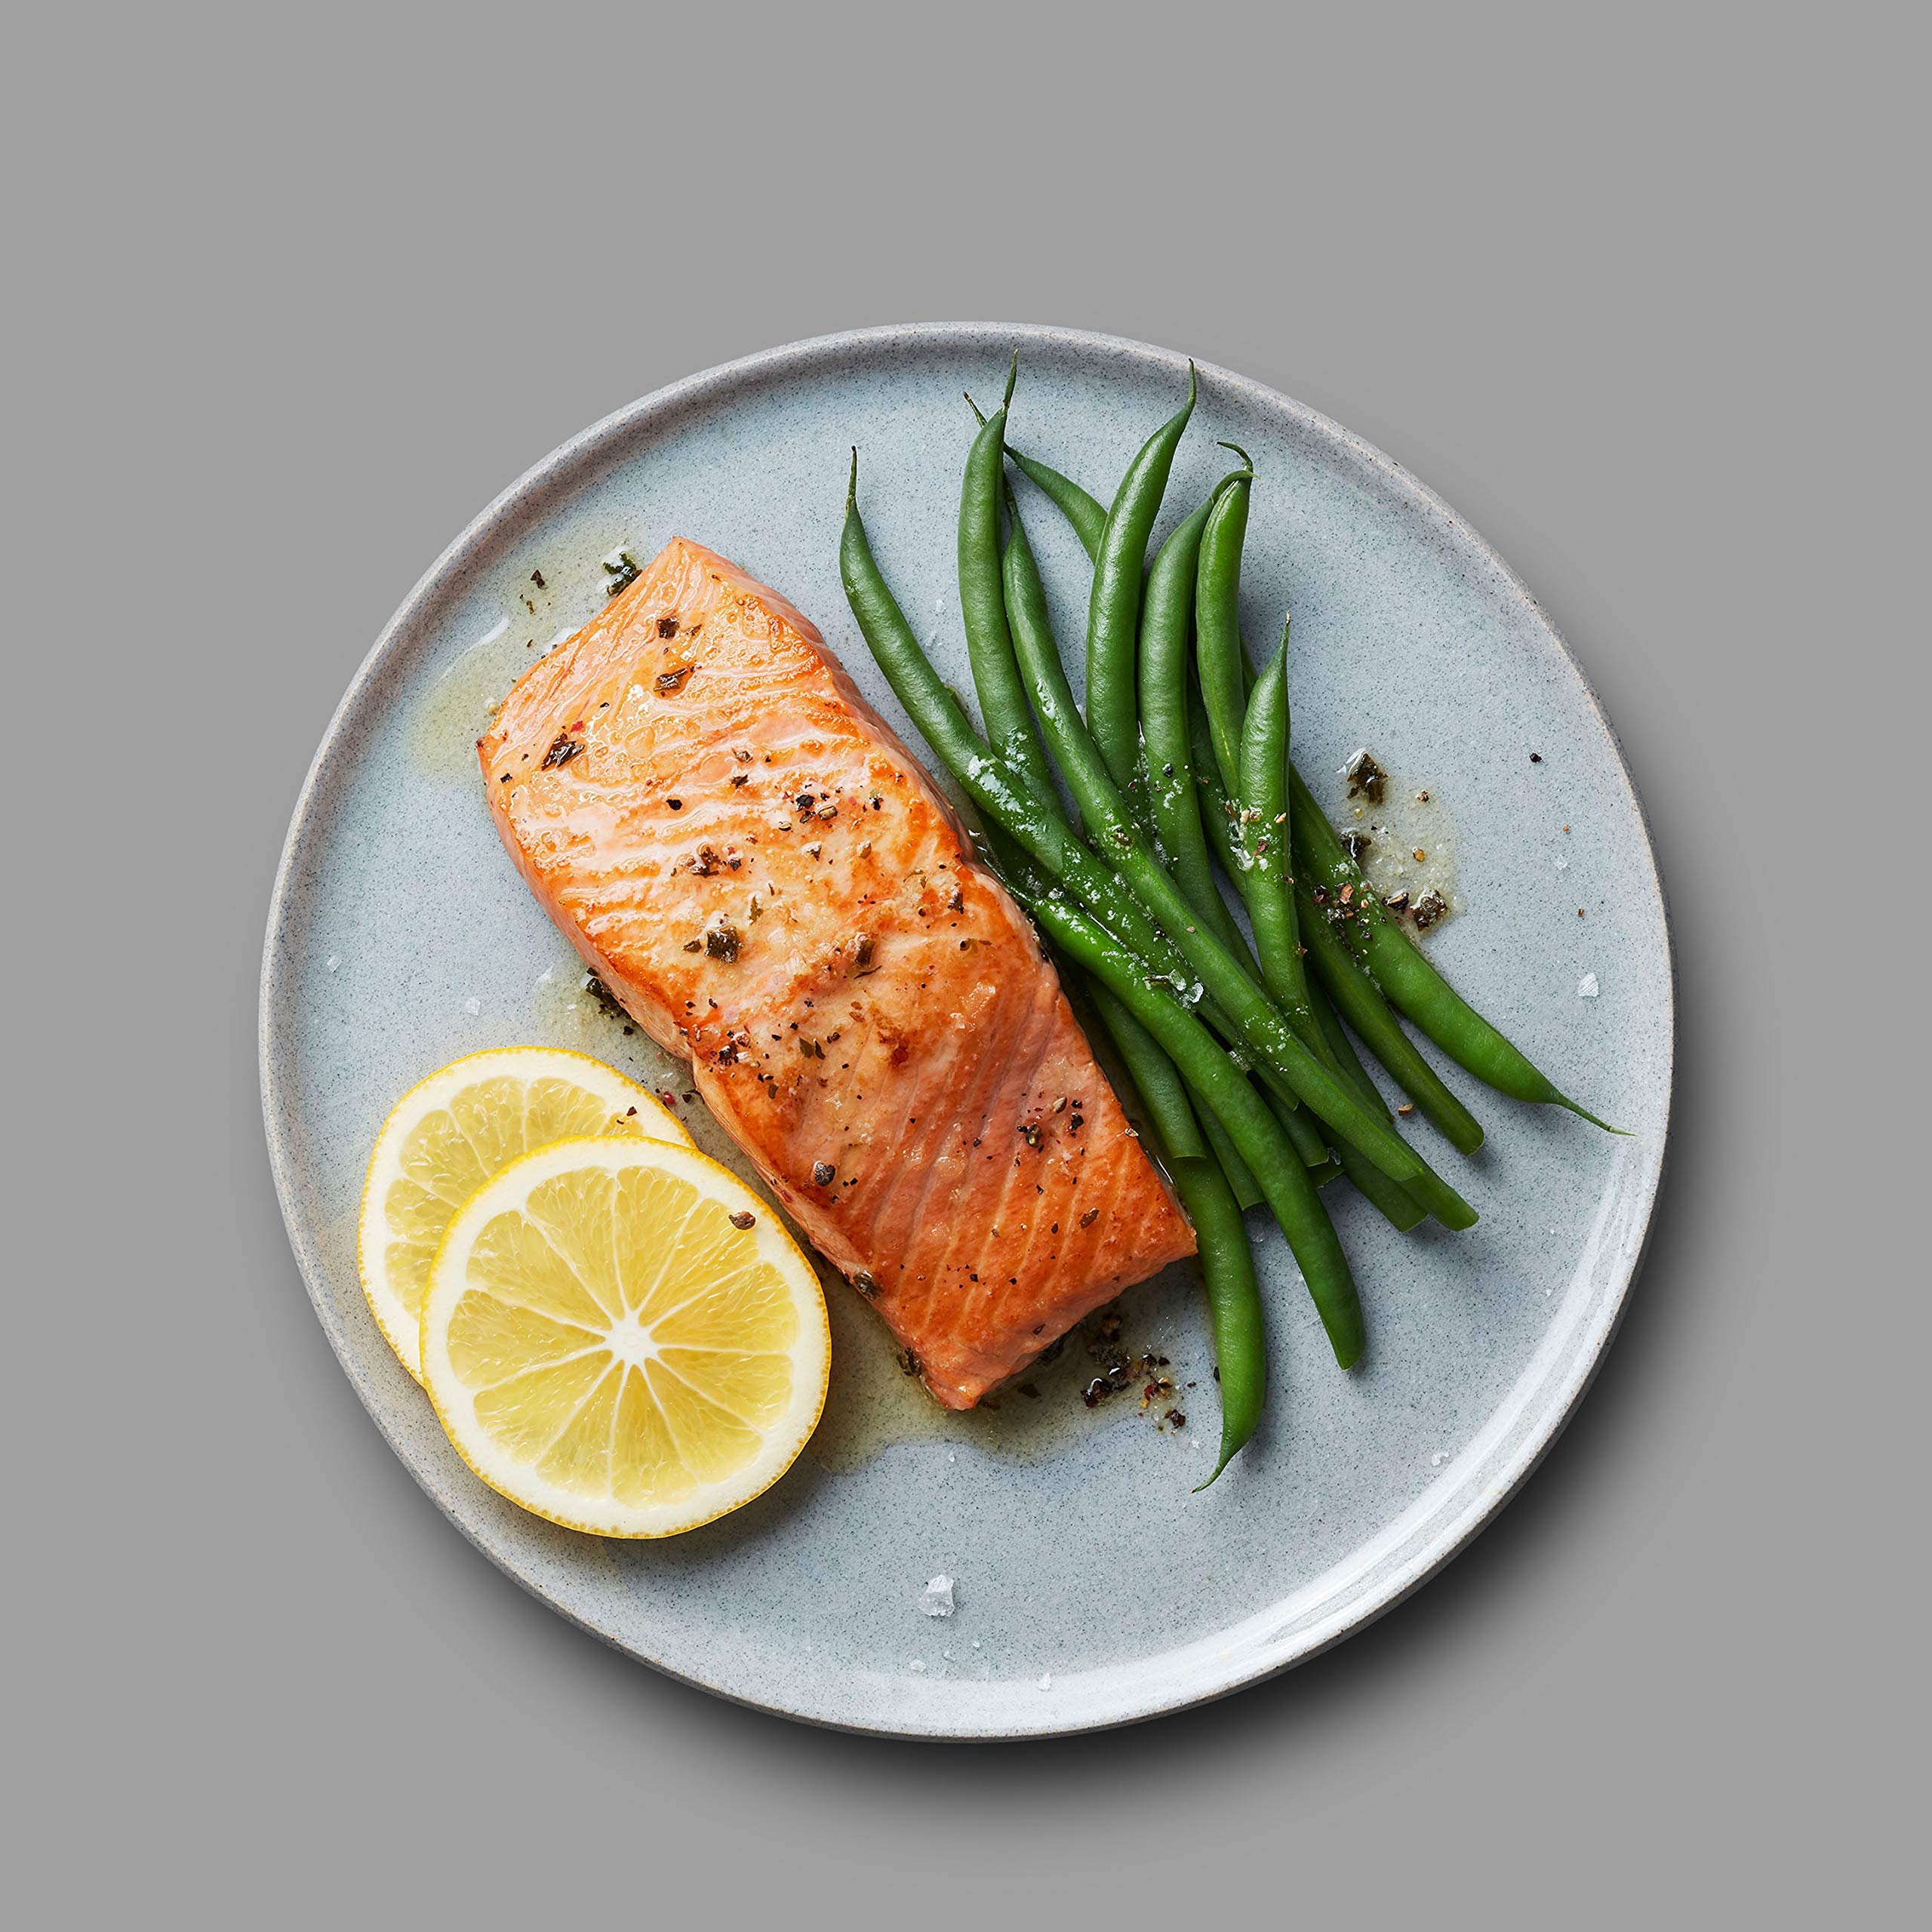 Martha Stewart for True North Seafood: Simple and Easy Sockeye Salmon with Miso Butter and Atlantic Salmon with Lemon Herb Butter - (Pack of 4) 11 oz. Trays by True North Seafood Company (Image #6)